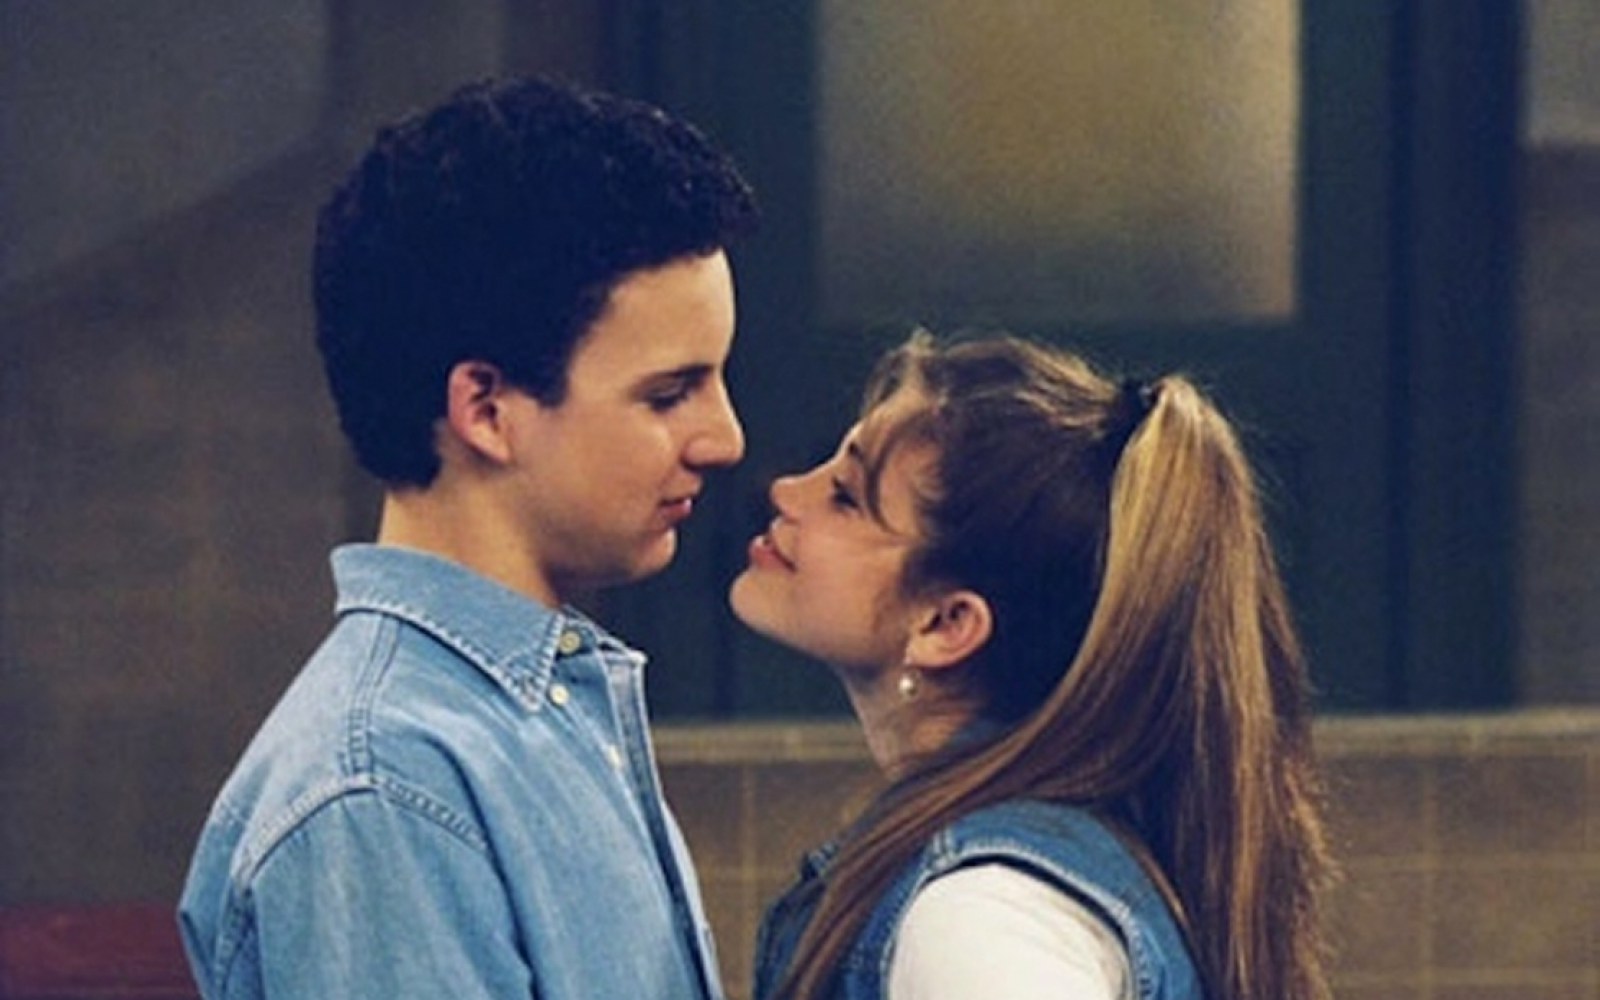 17 Times Cory And Topanga Gave Us Unrealistic Expectations About Relationships